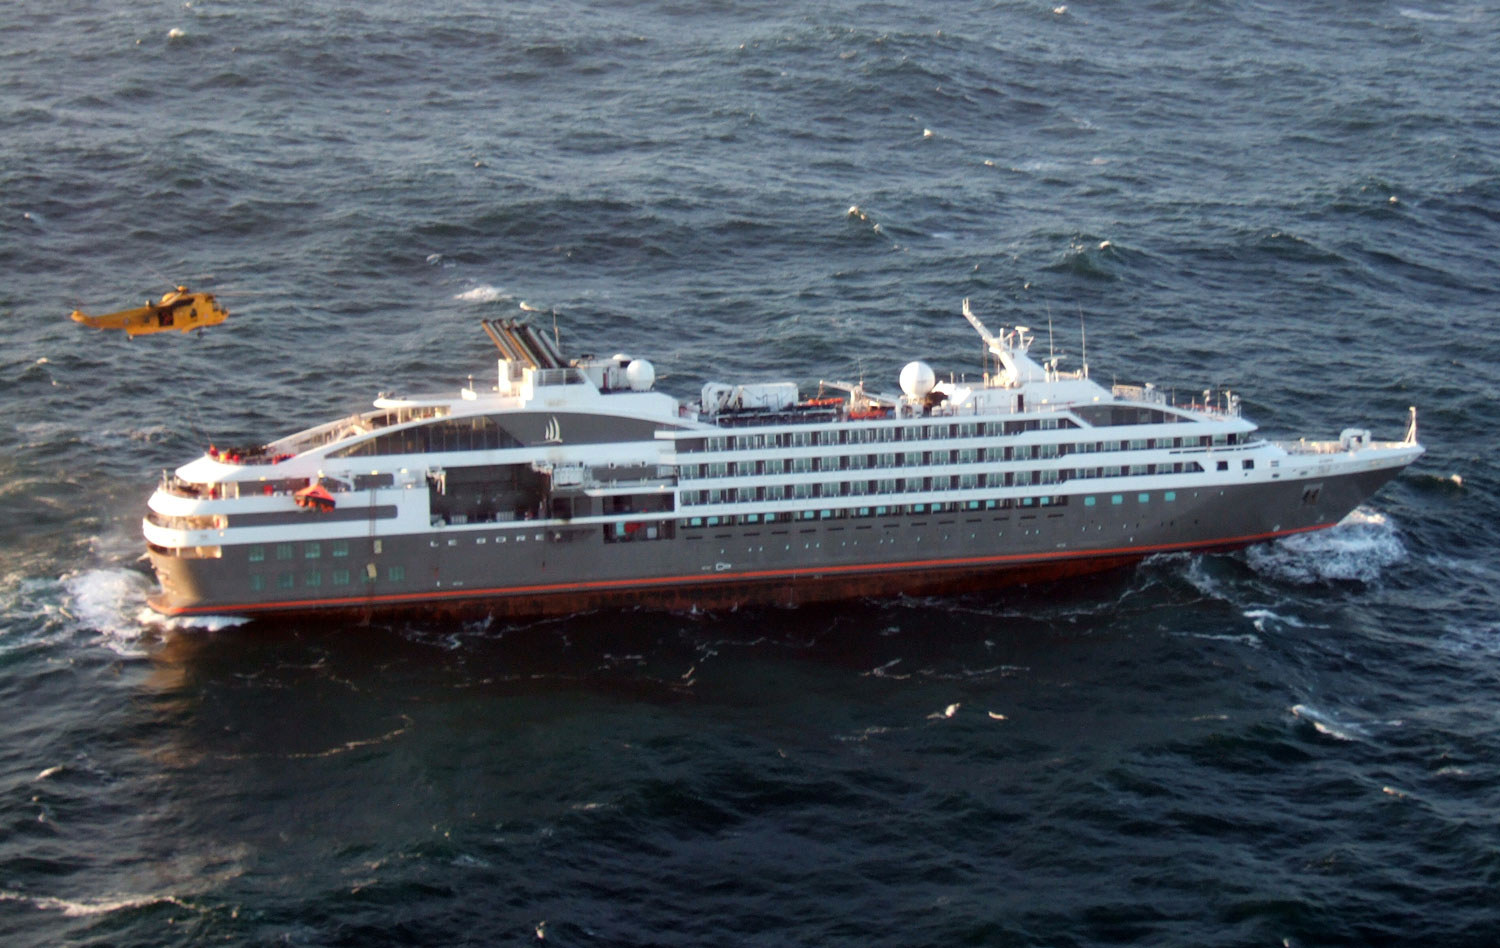 ship miscommunication Lack of proper communication on board ships is one of the main reasons for accidents at sea chief officer abhishek bhanawat describes two real life incidents wherein lack of communication leads to unfavourable circumstances for the ship and its crew.